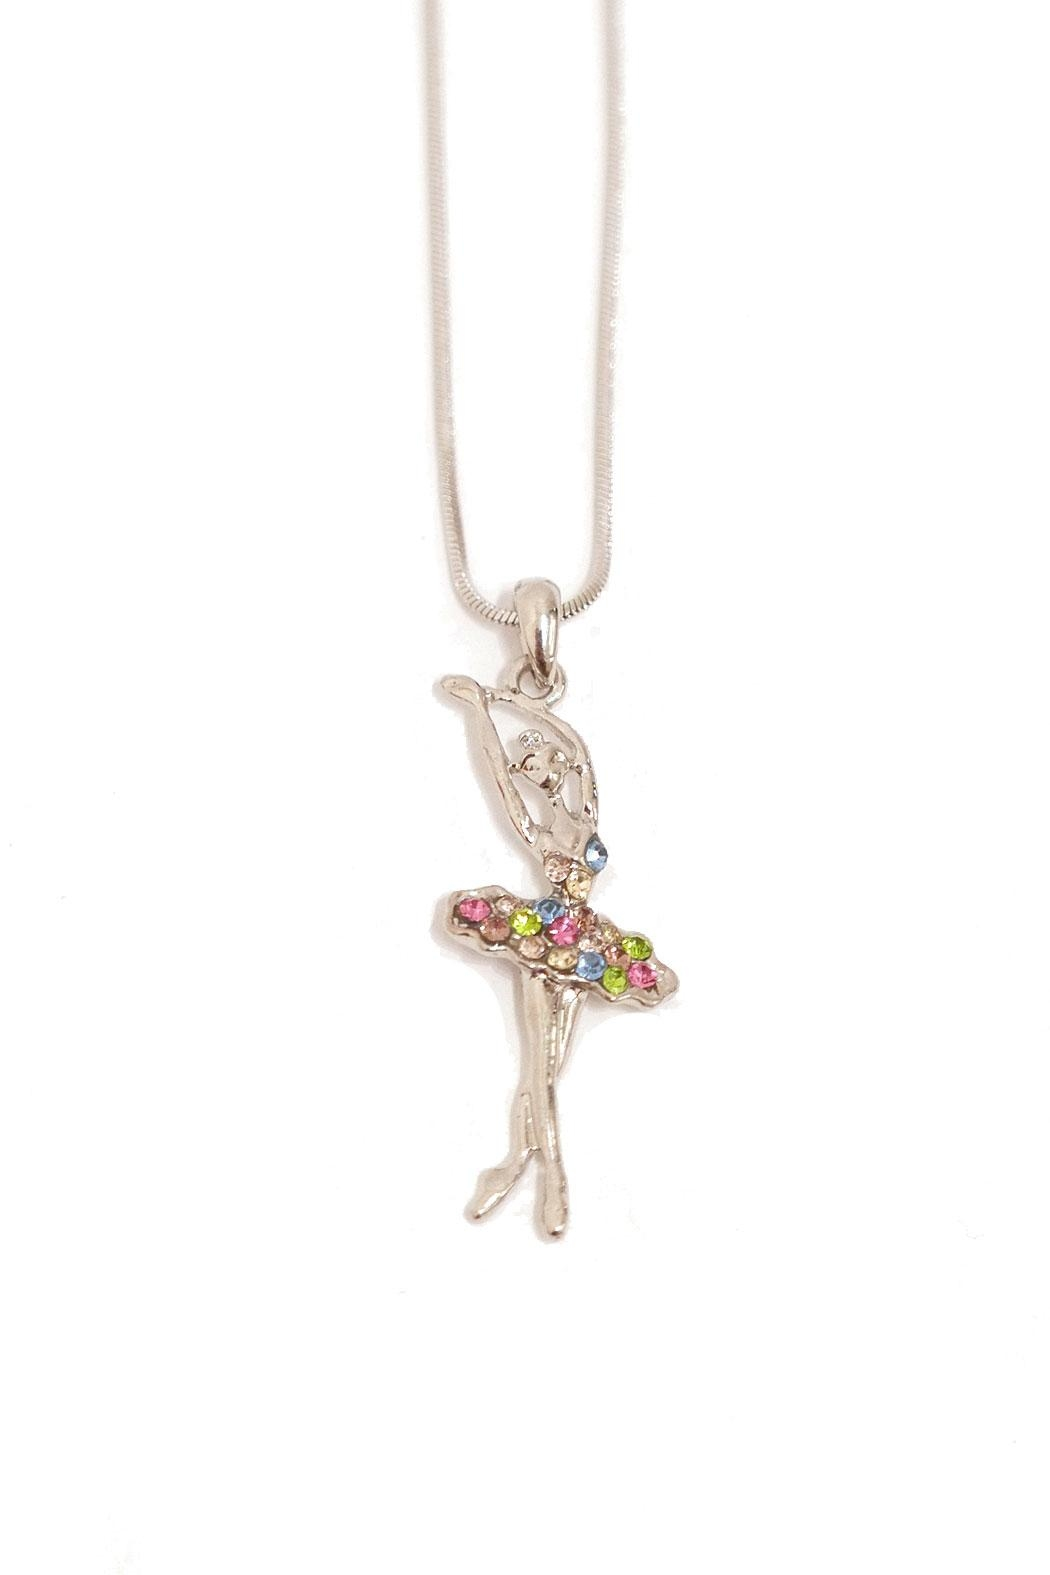 Cj mercantile jeweled ballerina necklace from massachusetts by sugar cj mercantile jeweled ballerina necklace front cropped image aloadofball Images